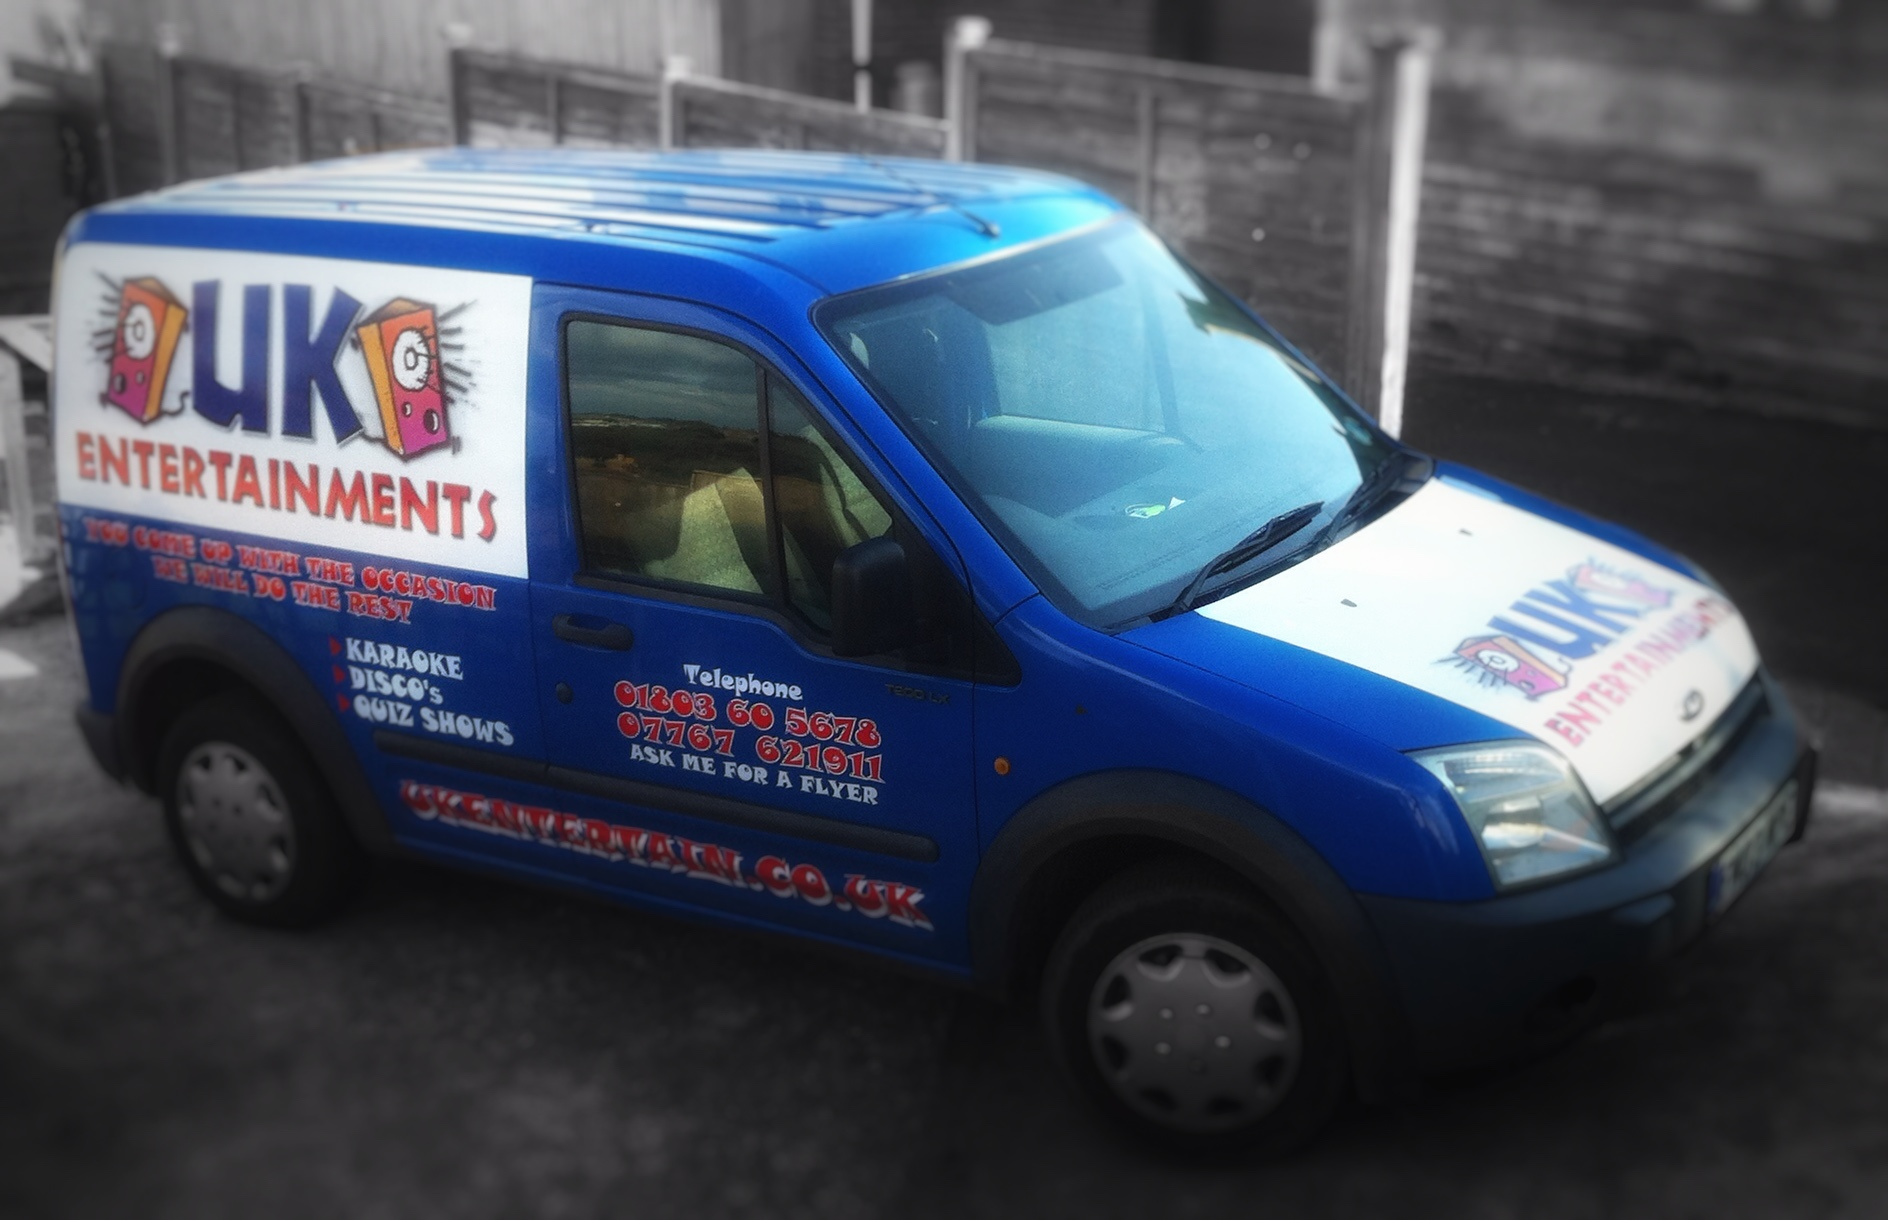 UK Entertainments work van